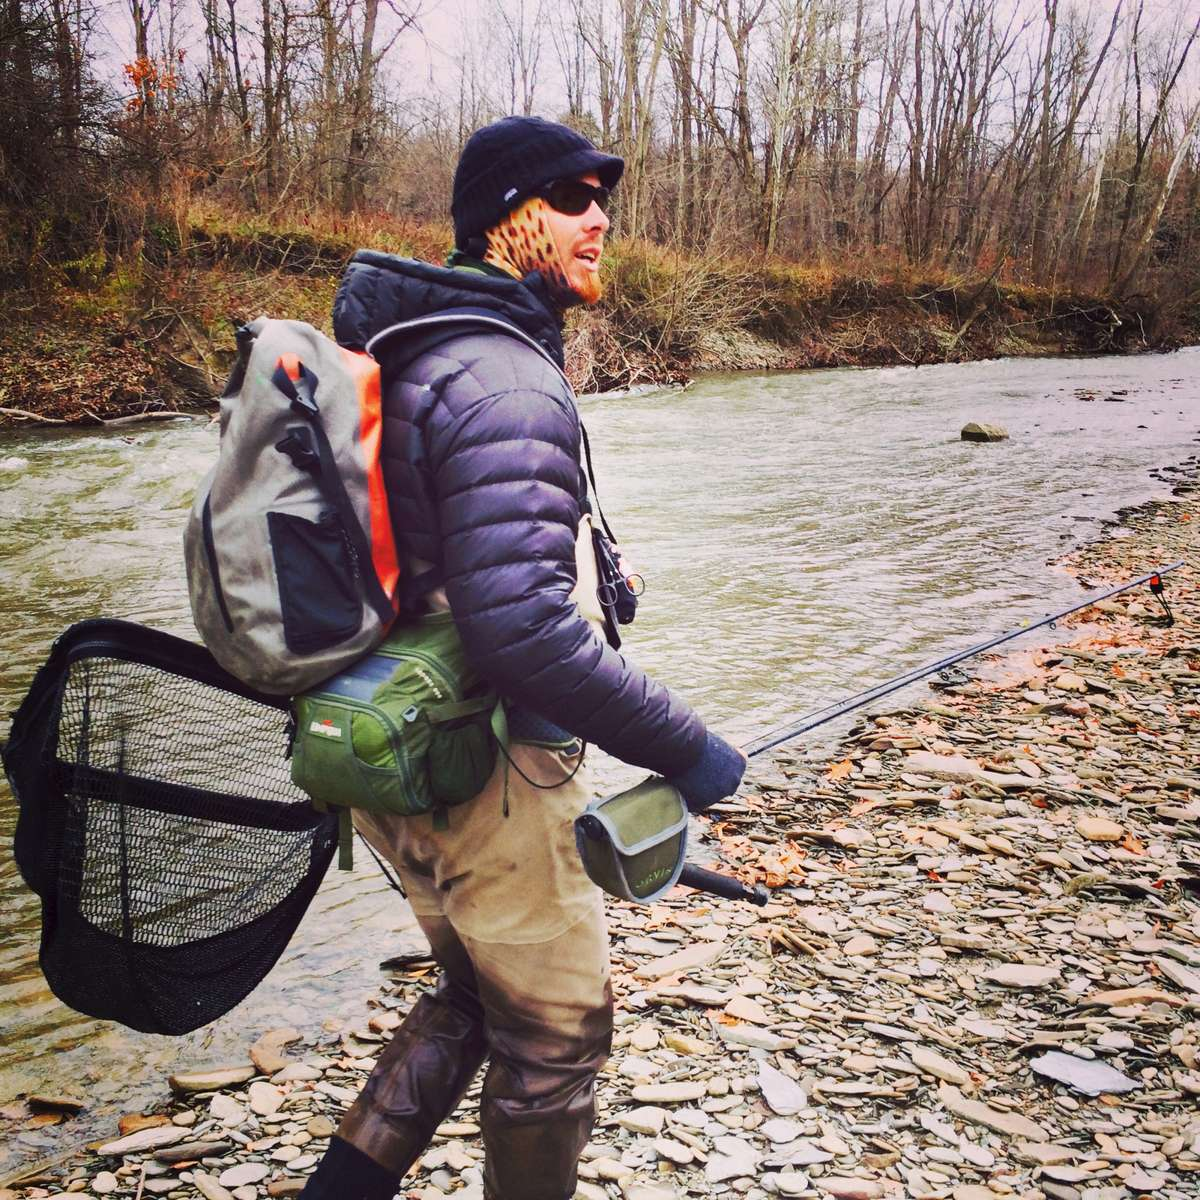 Fly fishing for steelhead trout.